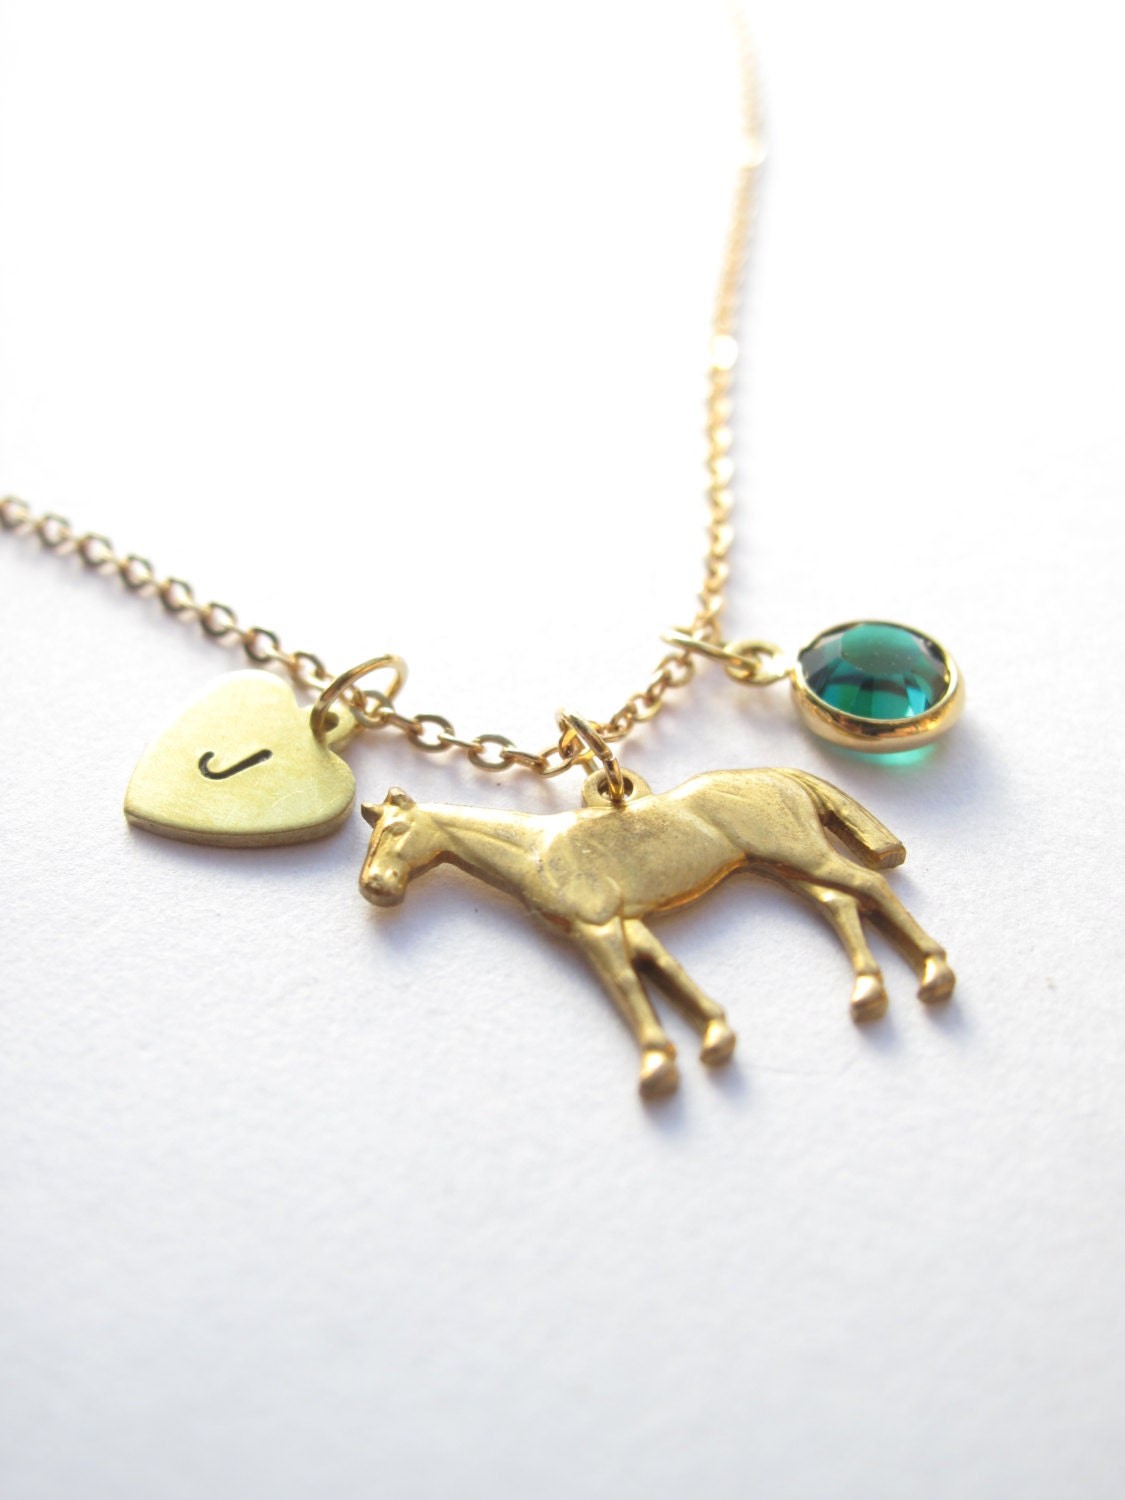 gold horse charm necklace initial necklace birthstone. Black Bedroom Furniture Sets. Home Design Ideas